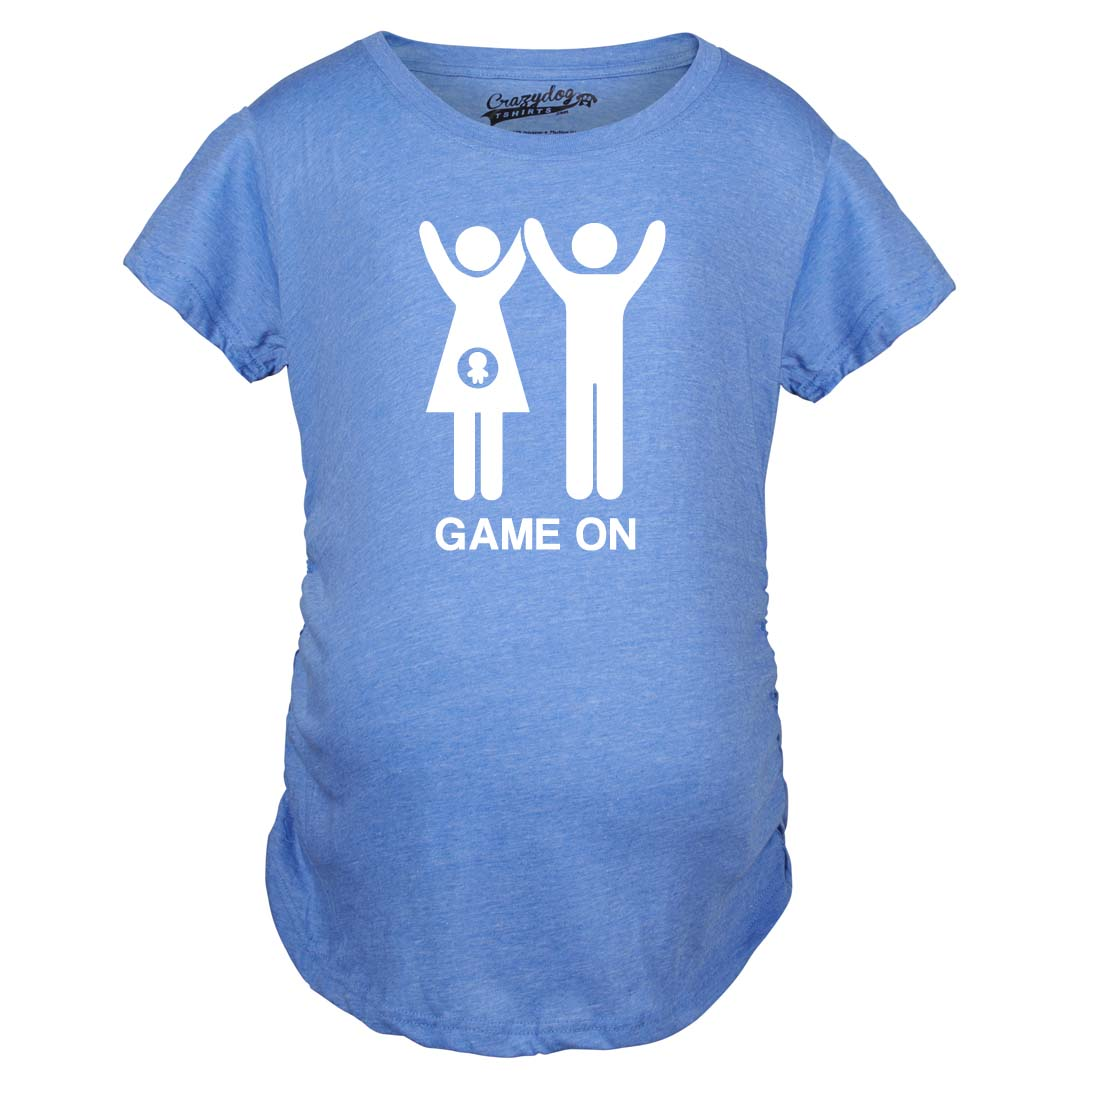 Maternity Game On Couple Tee Expecting Baby Bump Pregnancy ...